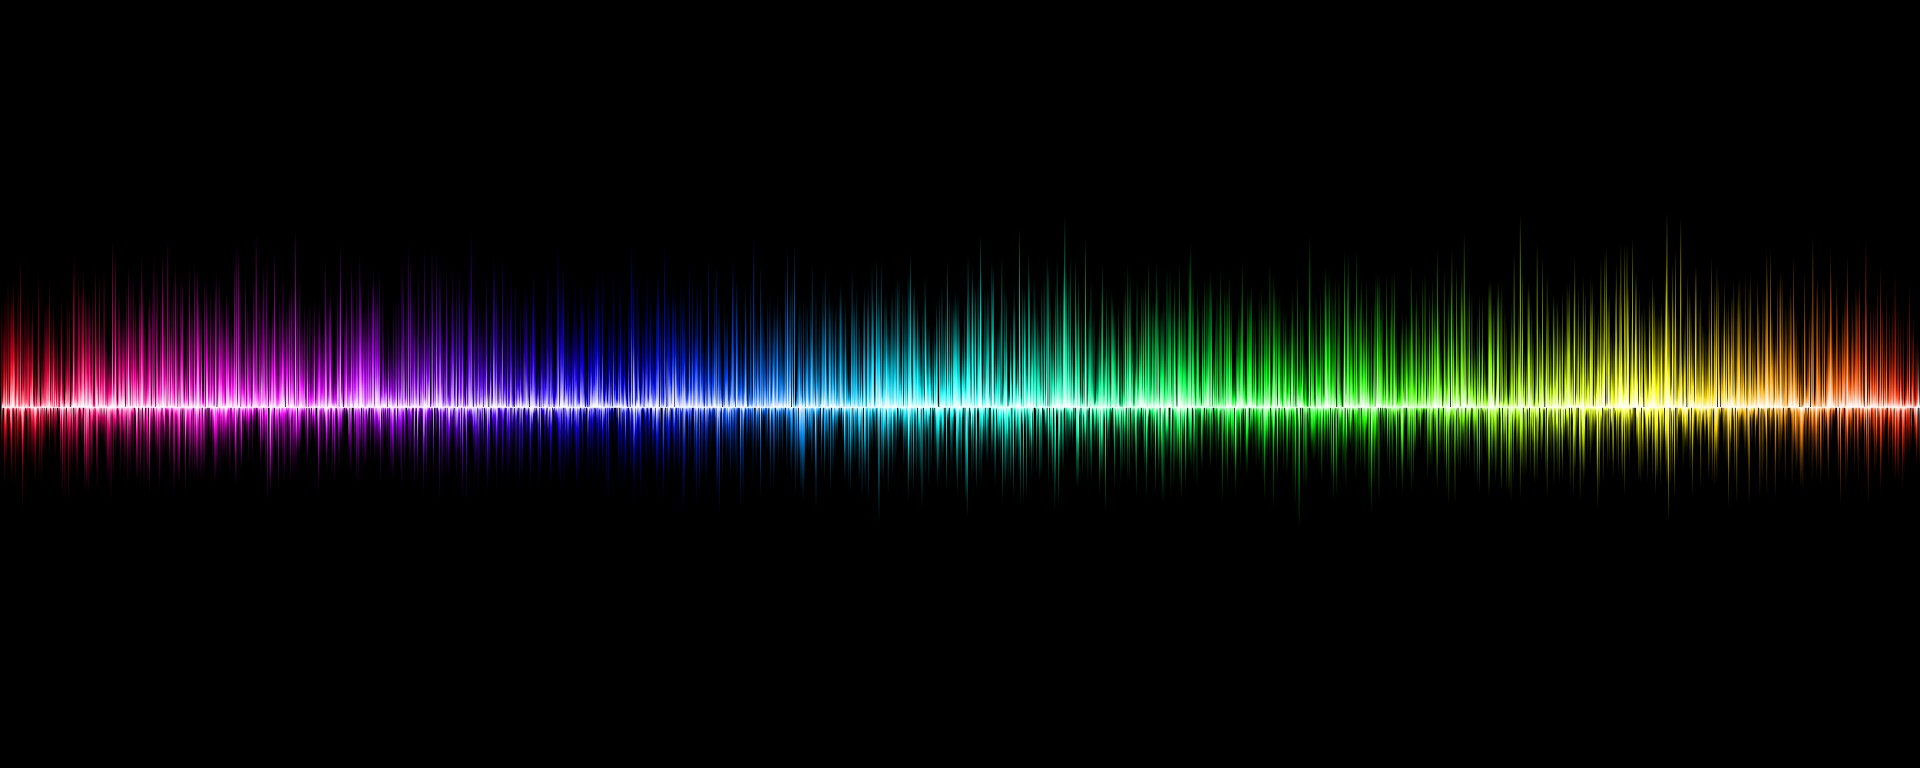 sound waves and visible spectrum graphic